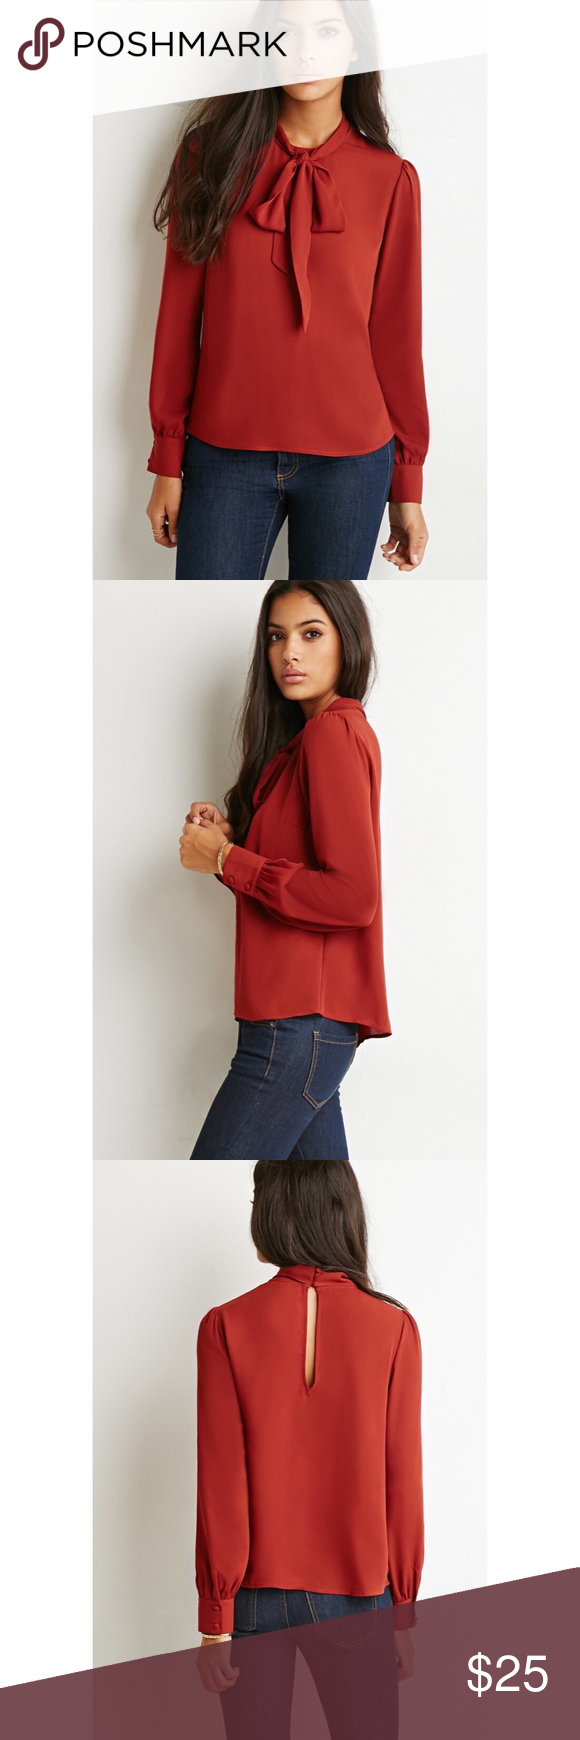 Forever21 Bow High Neck Blouse Nwt In 2018 My Posh Picks